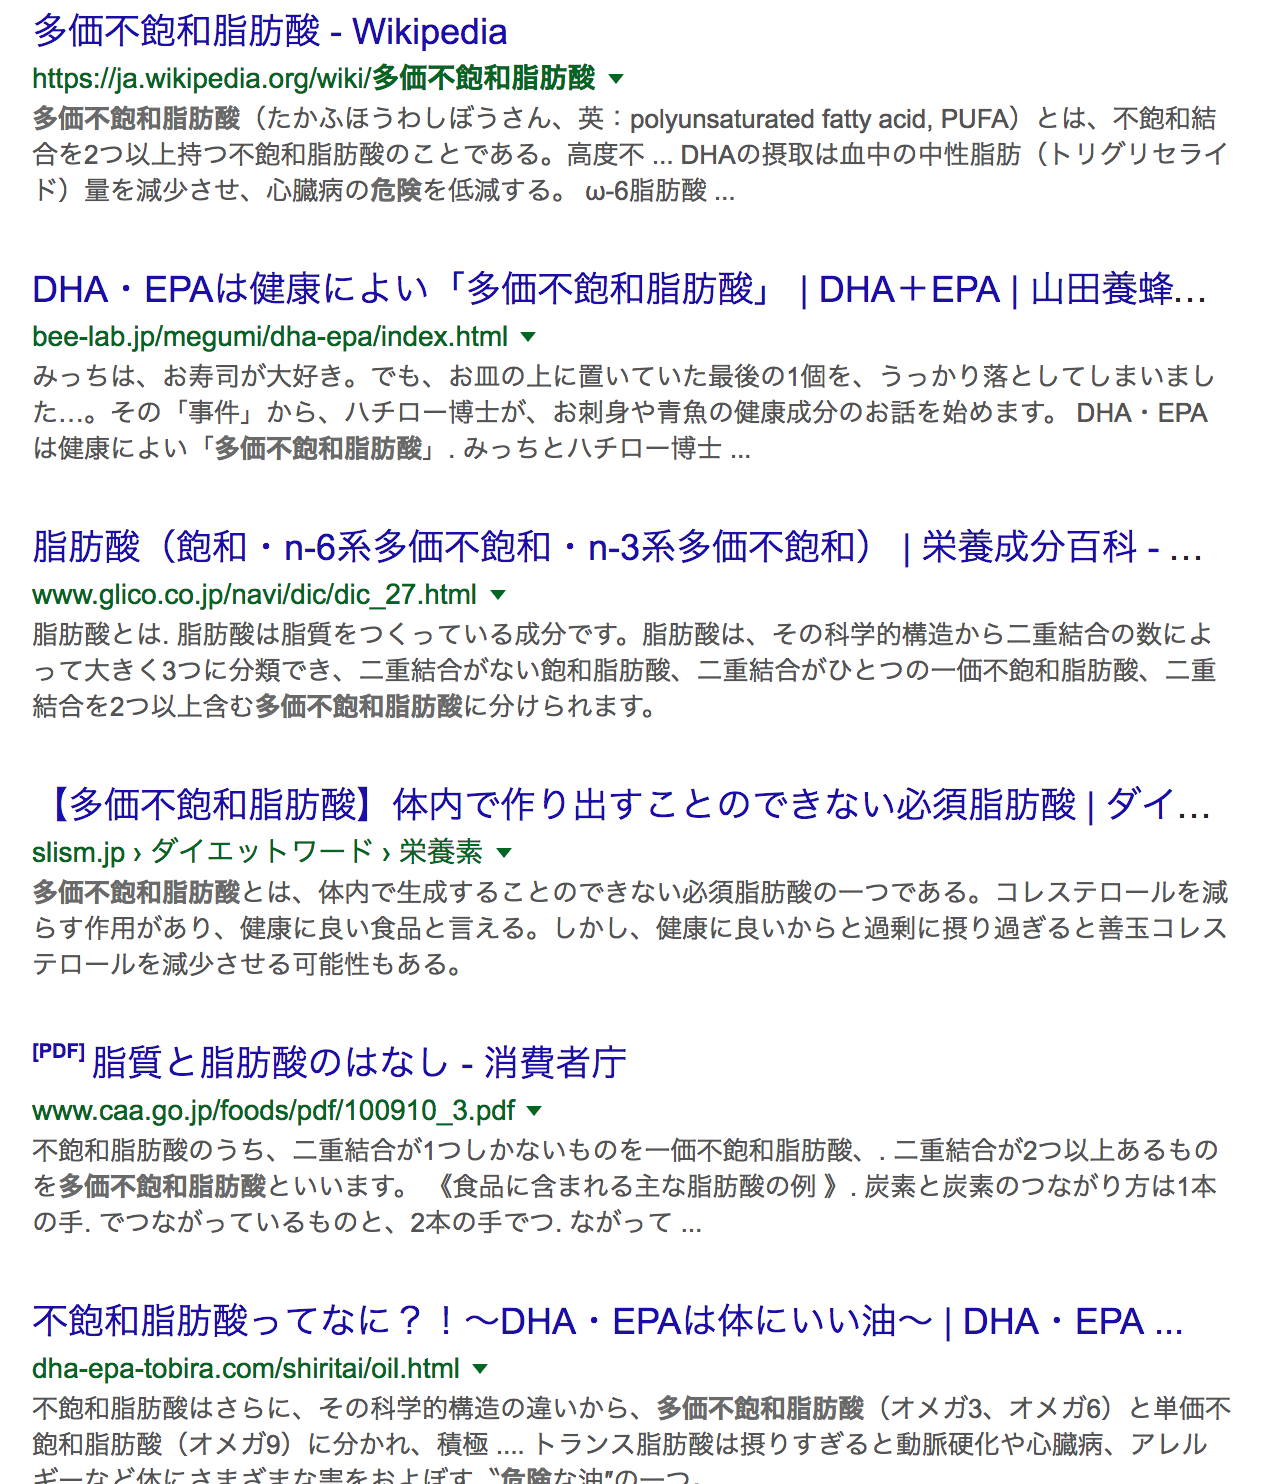 201701060025087f2.png